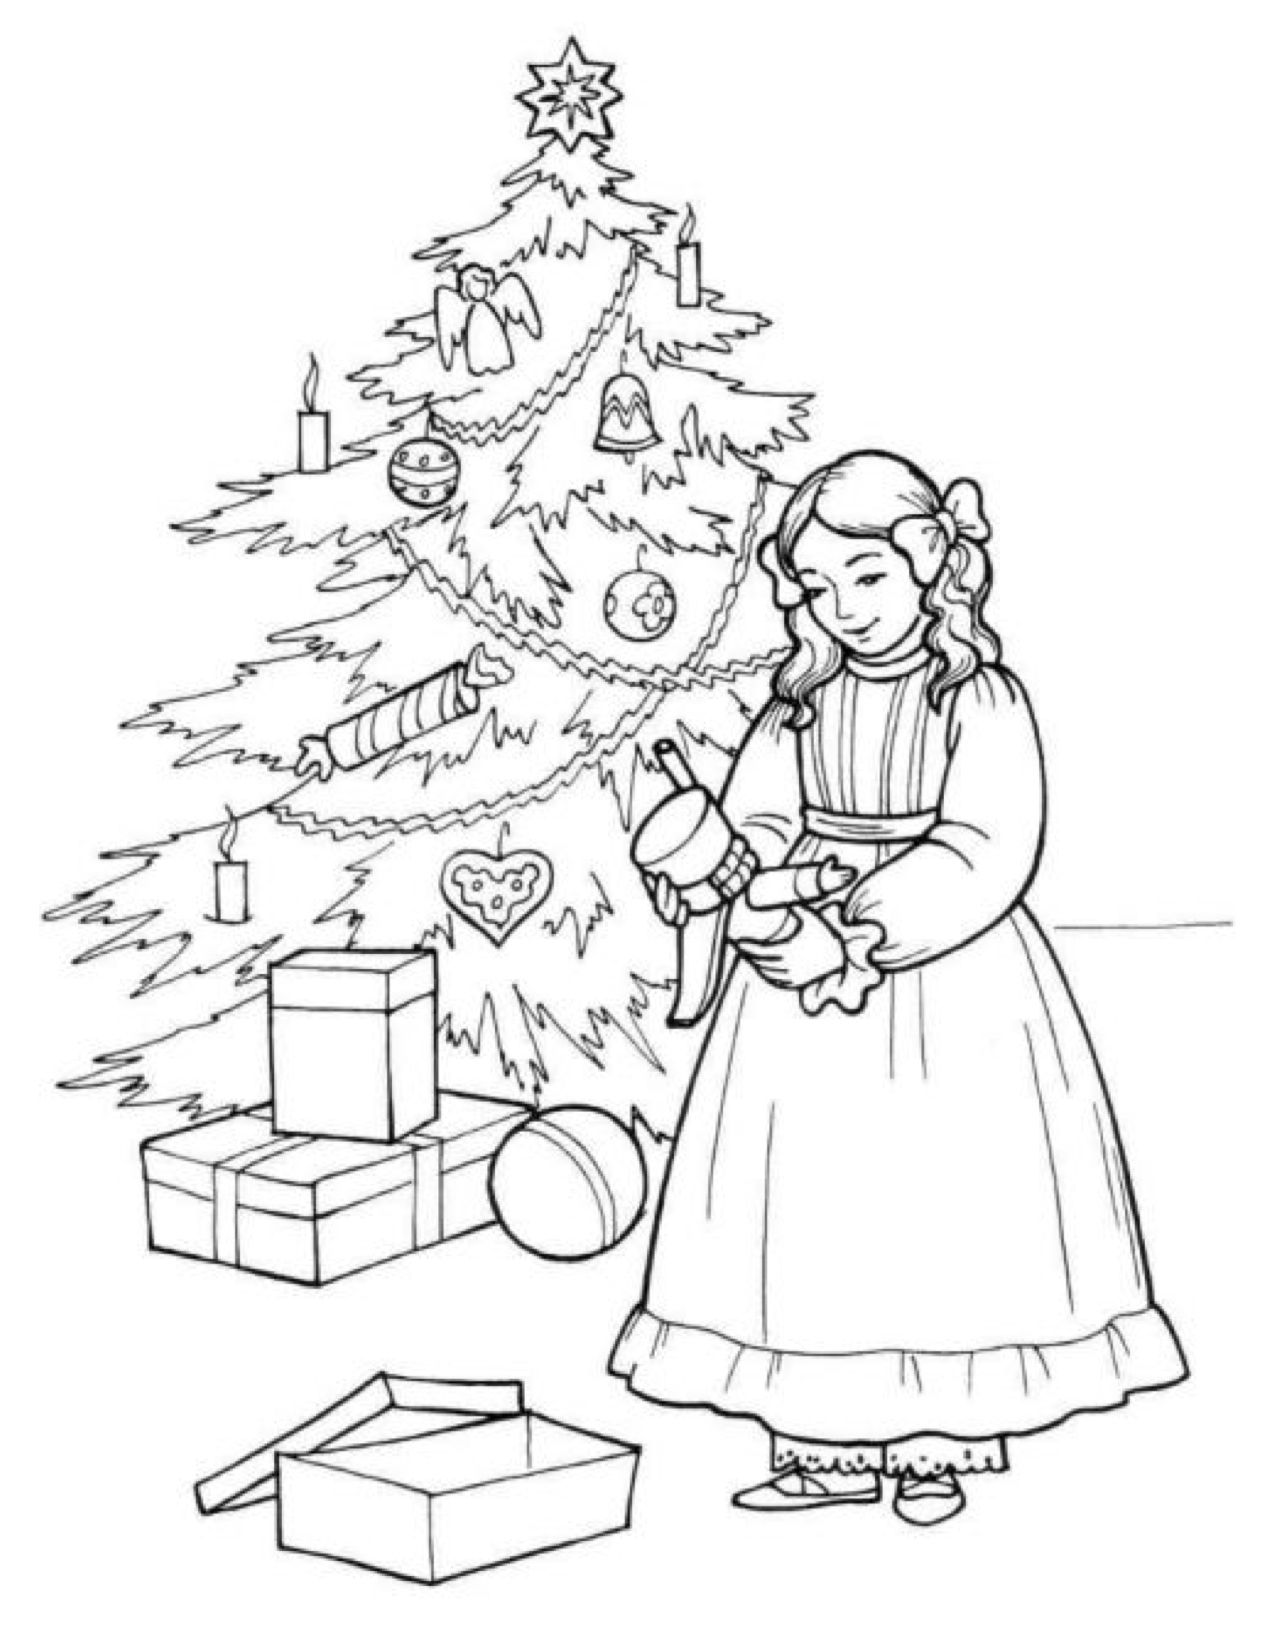 Clara nutcracker coloring page nutcracker ballet for Nutcracker ballet coloring pages